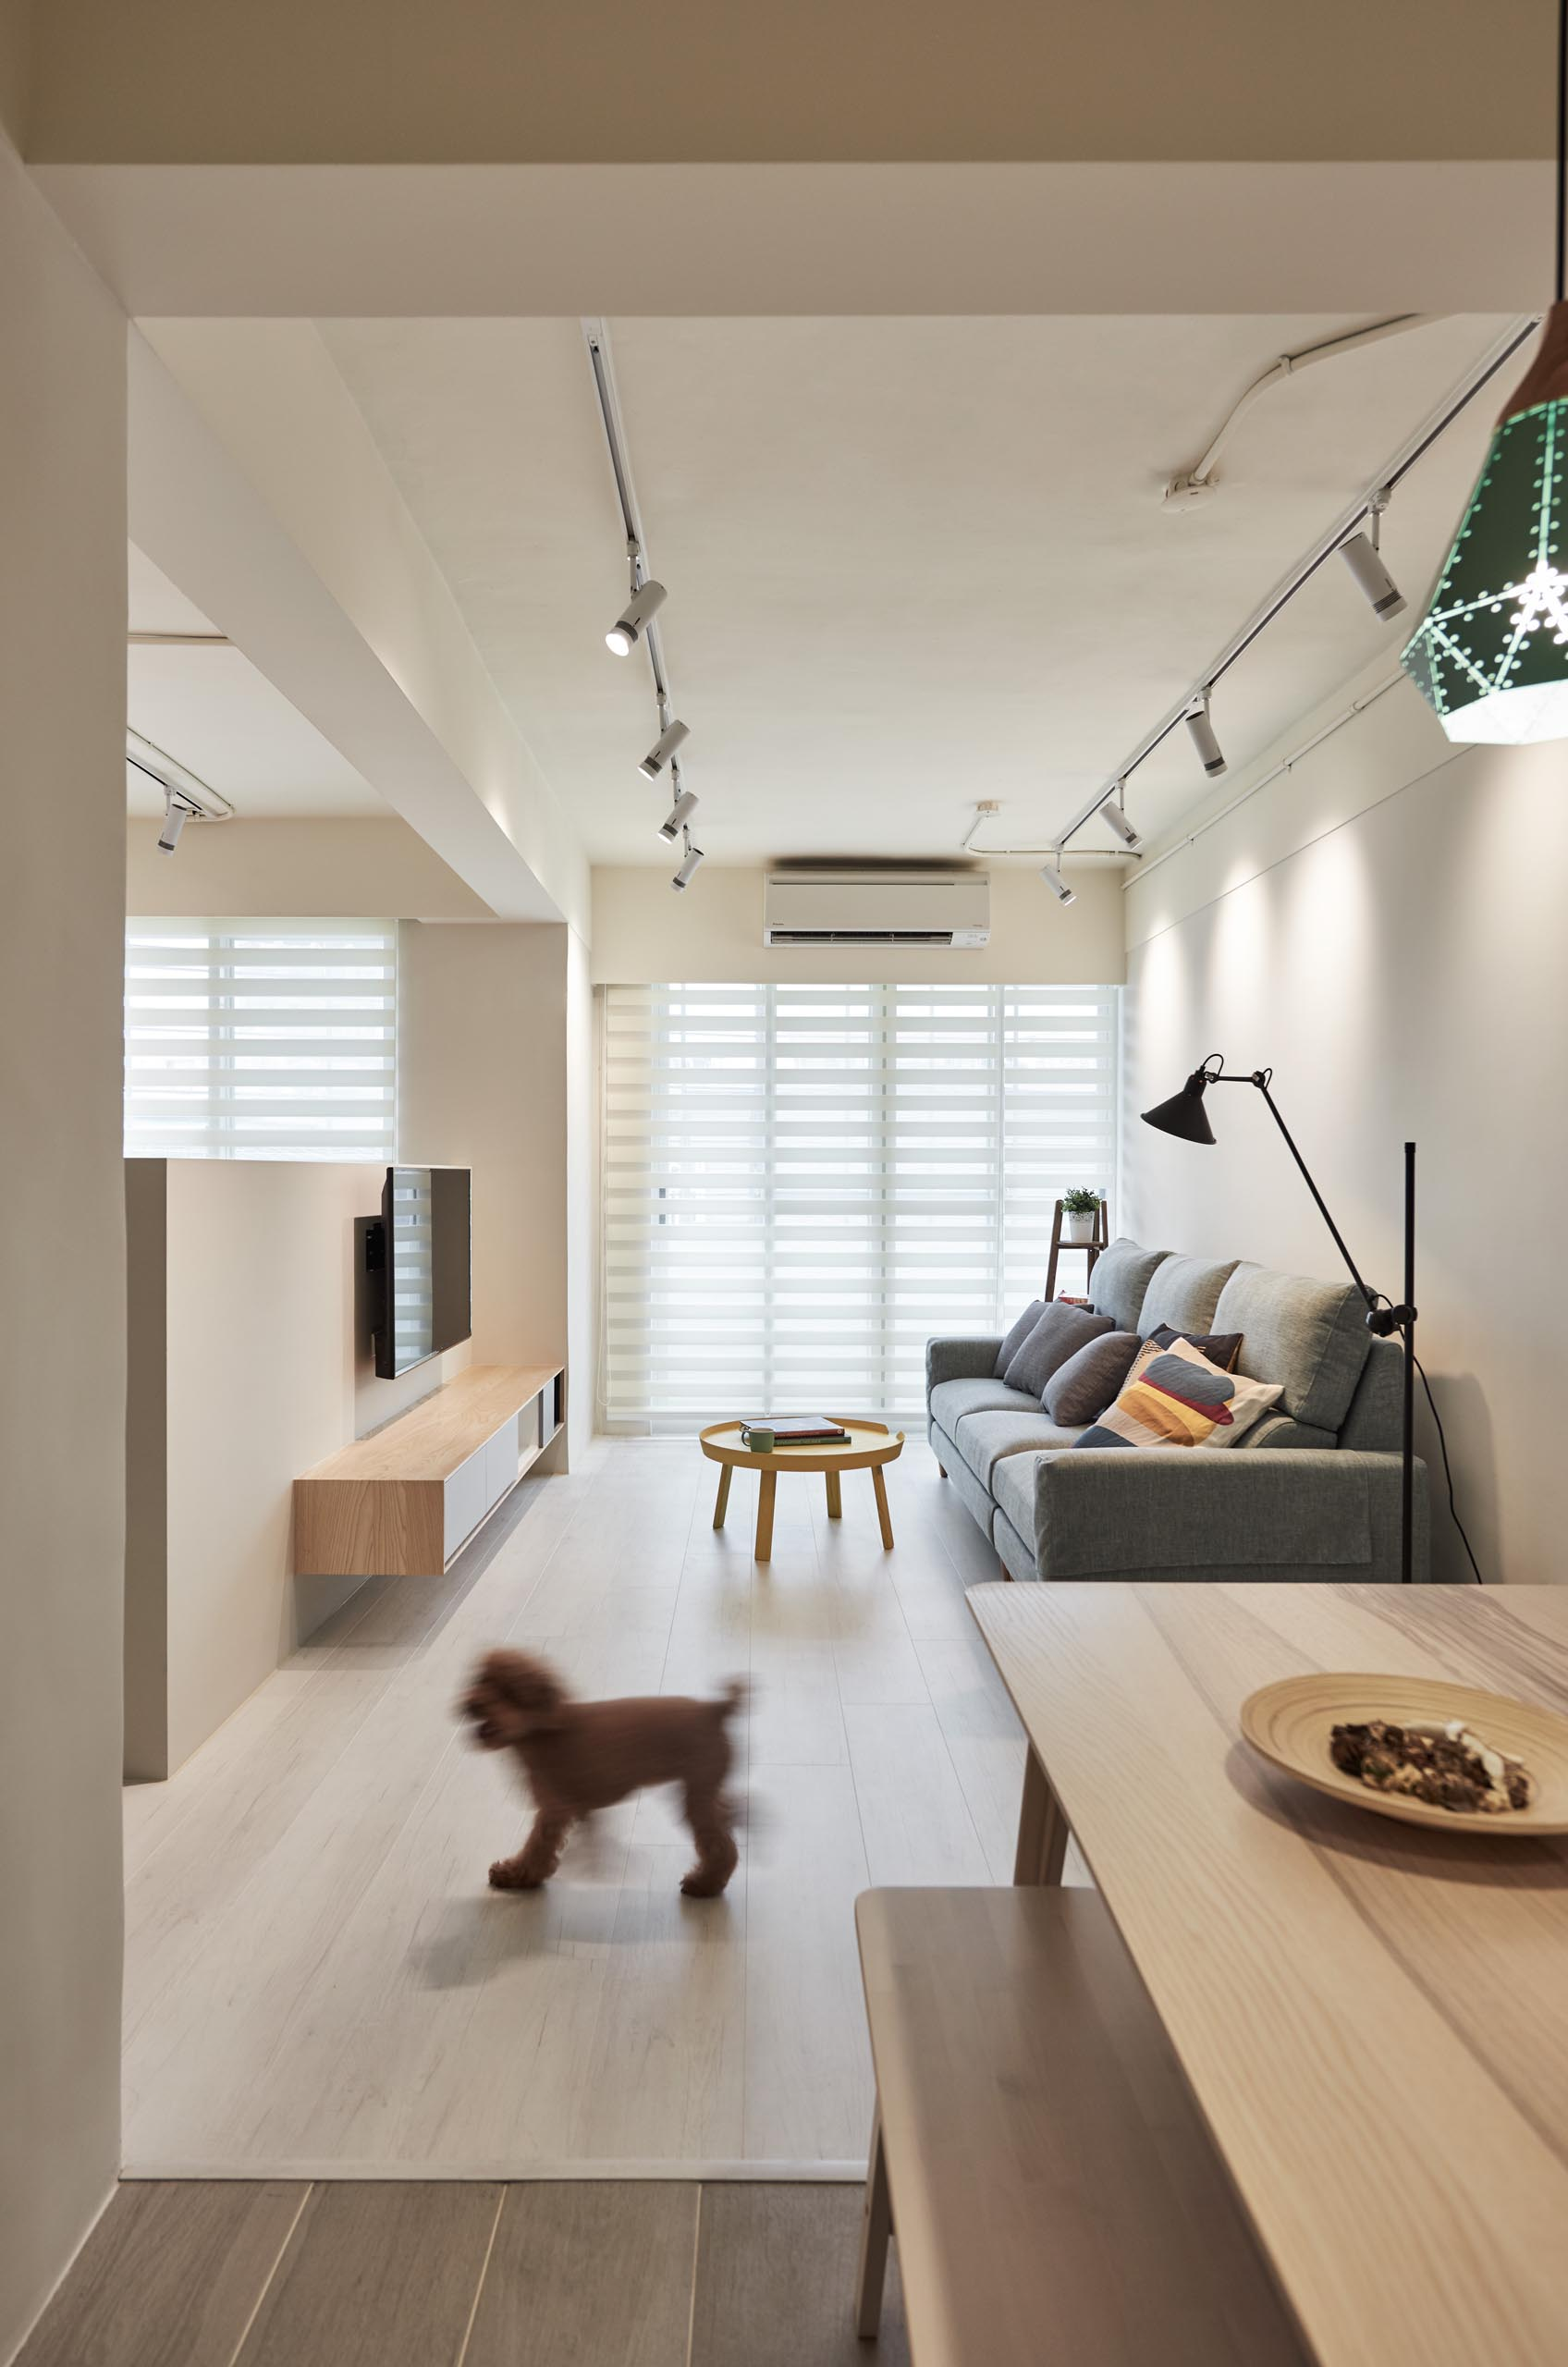 The living room receives an abundance of natural light from the large windows, while track lighting allows light to be directed at different areas of the room.